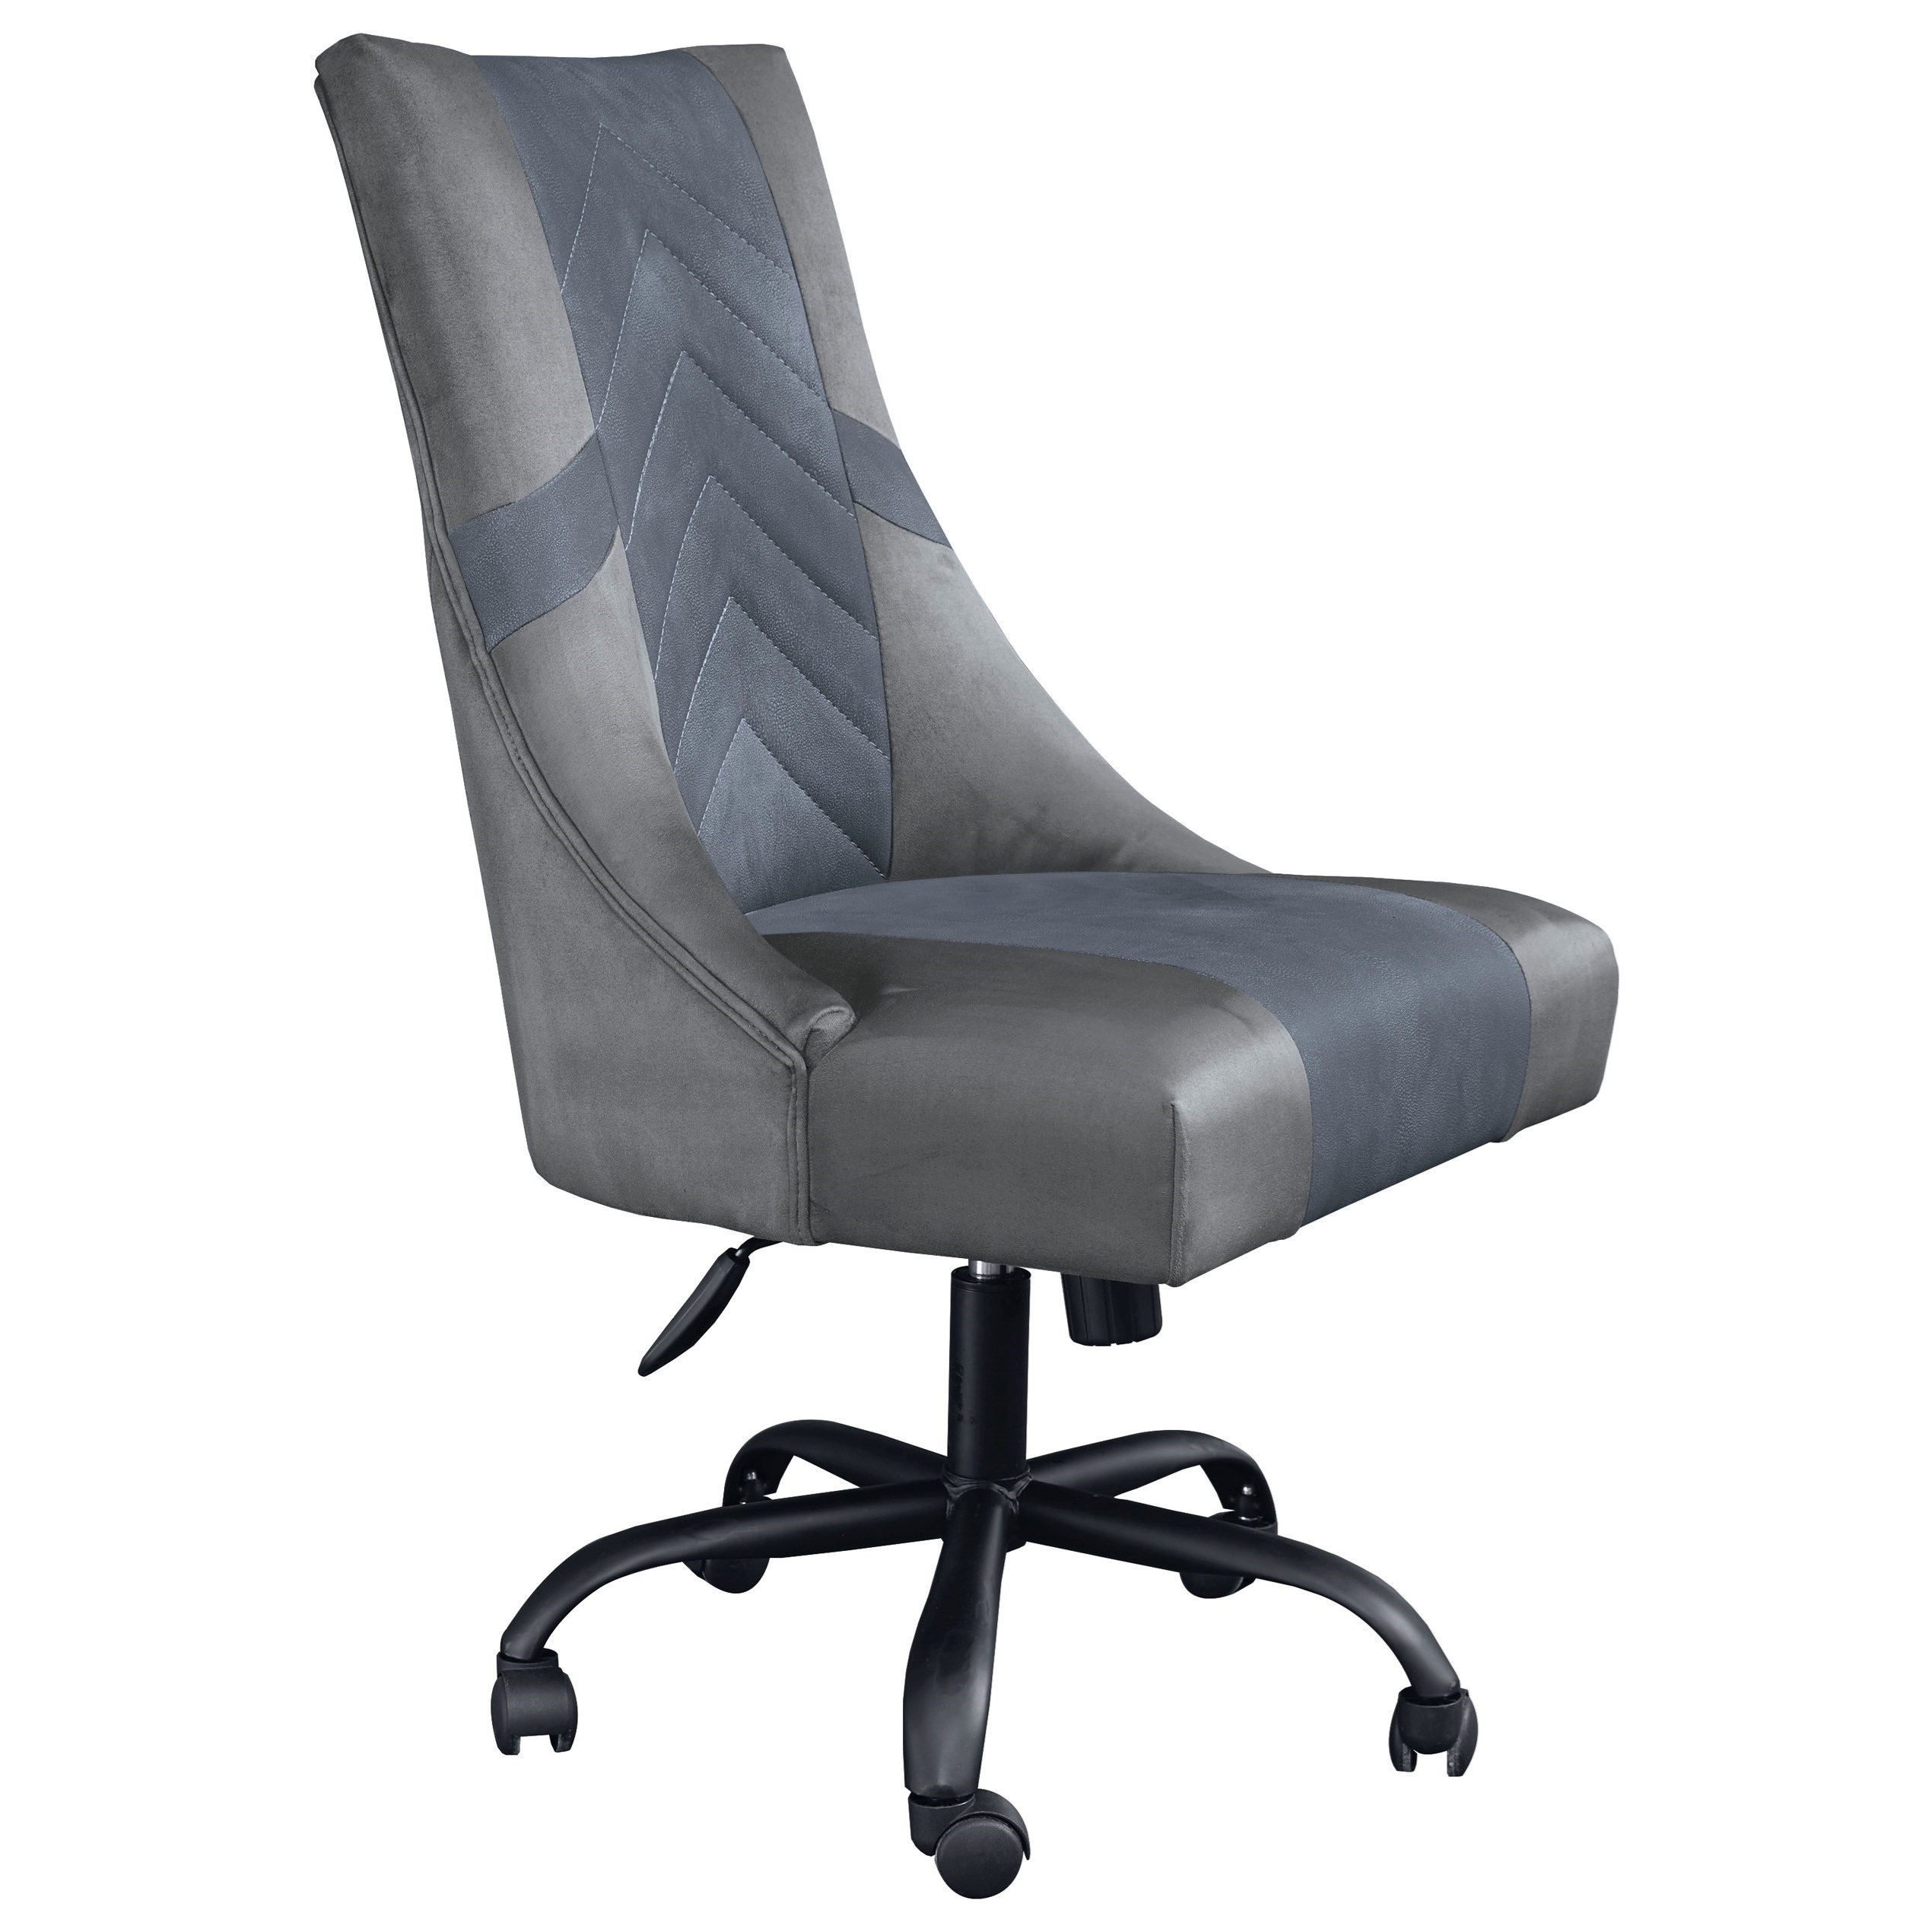 Barolli Swivel Gaming Chair by Signature Design by Ashley at Houston's Yuma Furniture